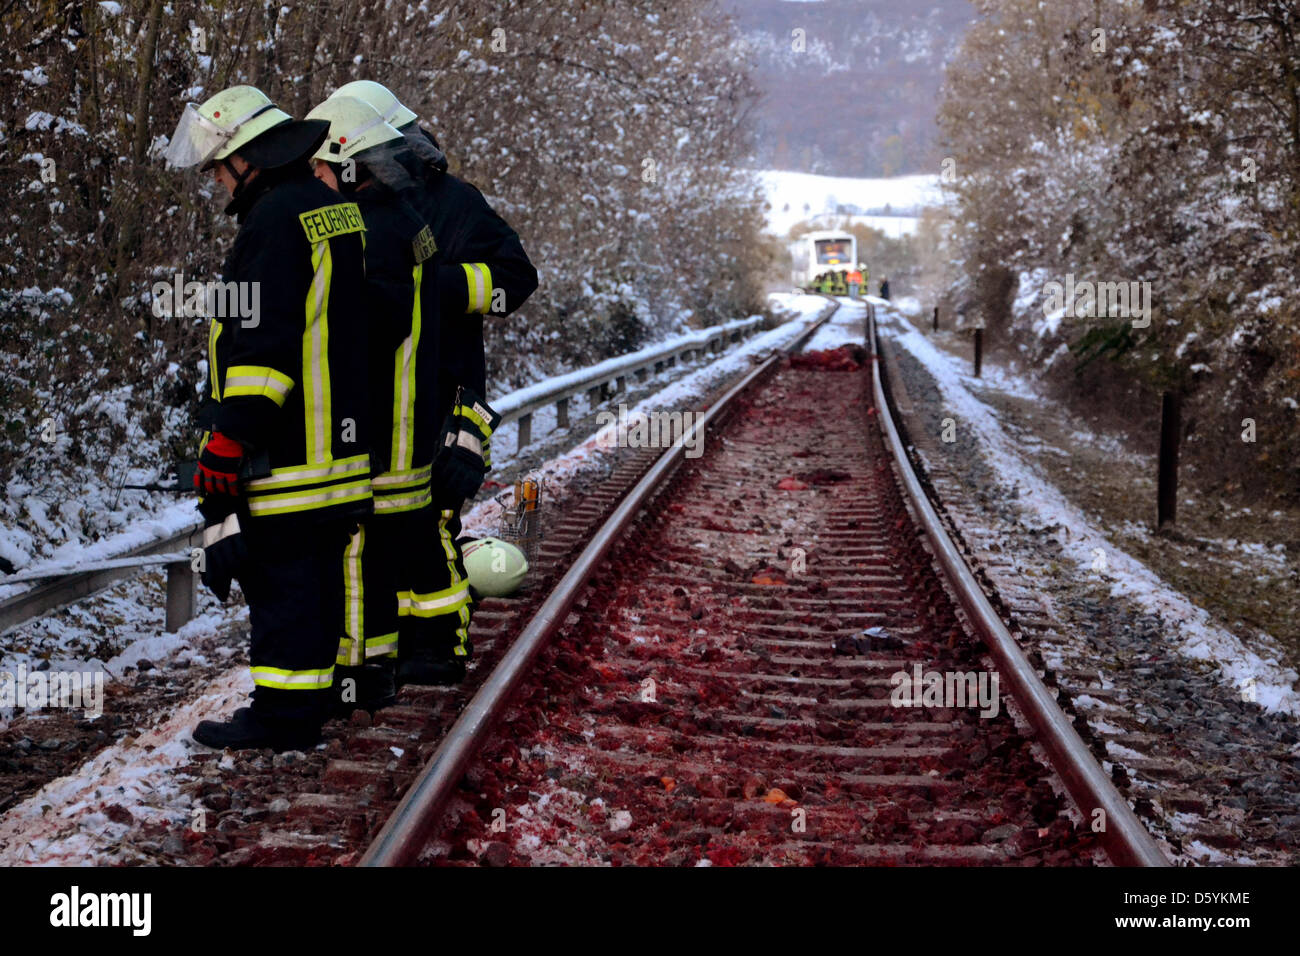 Firefighters stand on the tracks at the site of an accident in Wipfratal, Germany, 29 October 2012. Earlier that Stock Photo